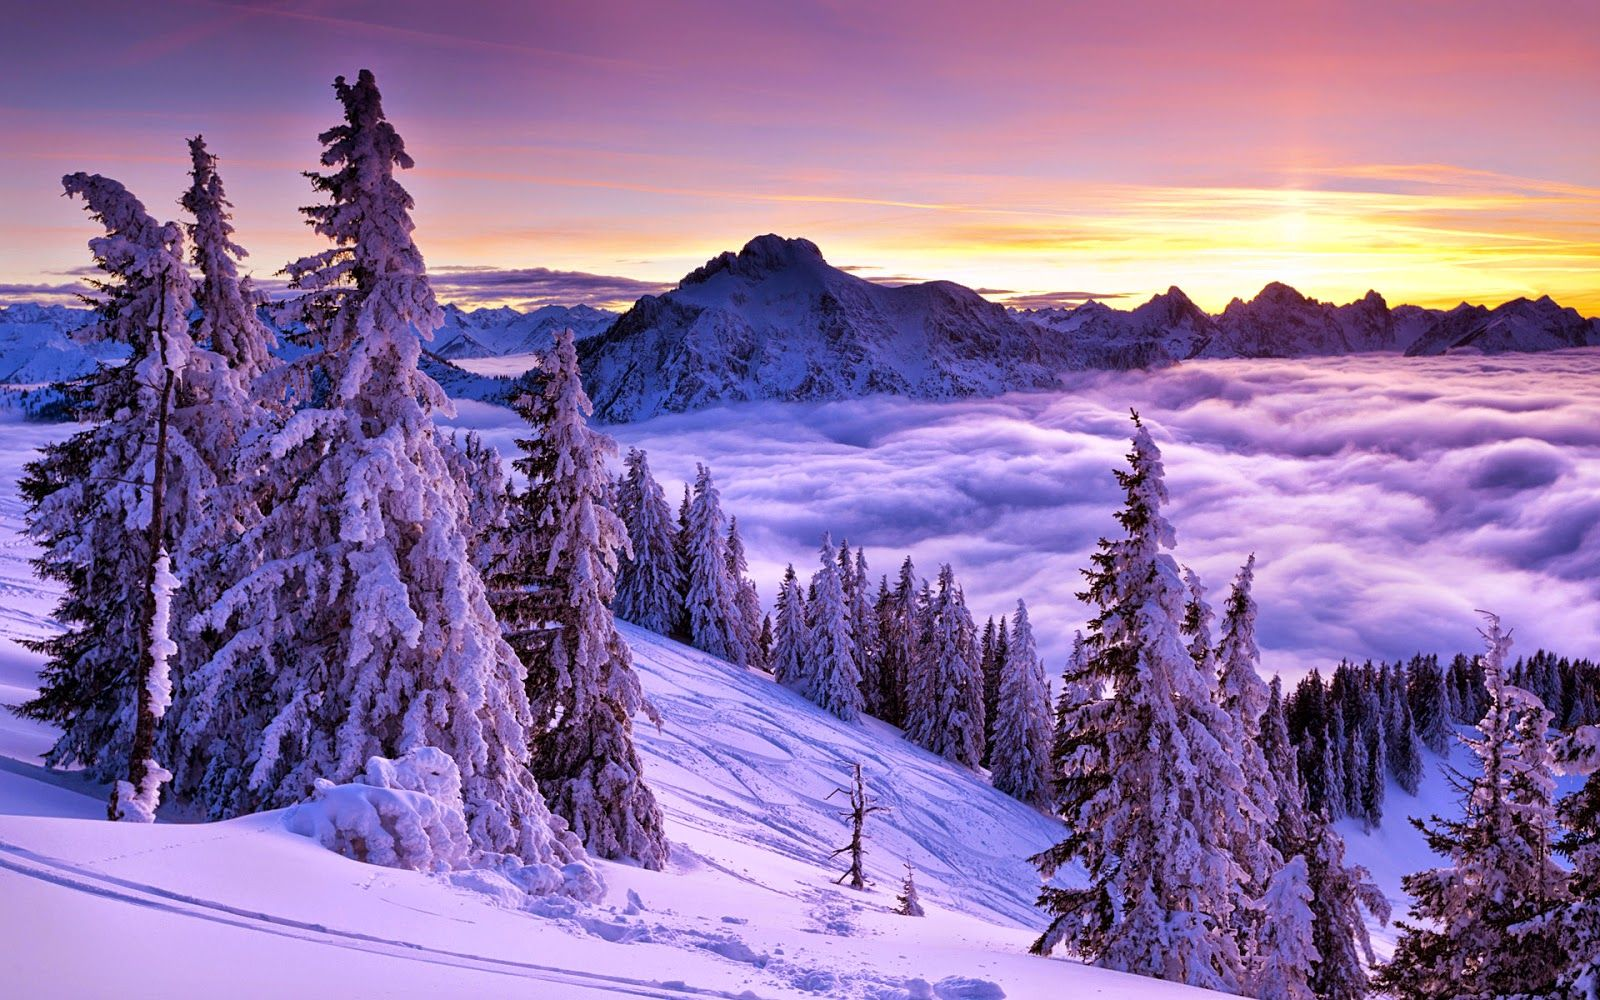 Purple World HD Wallpaper 1080p Winter wallpaper, Winter